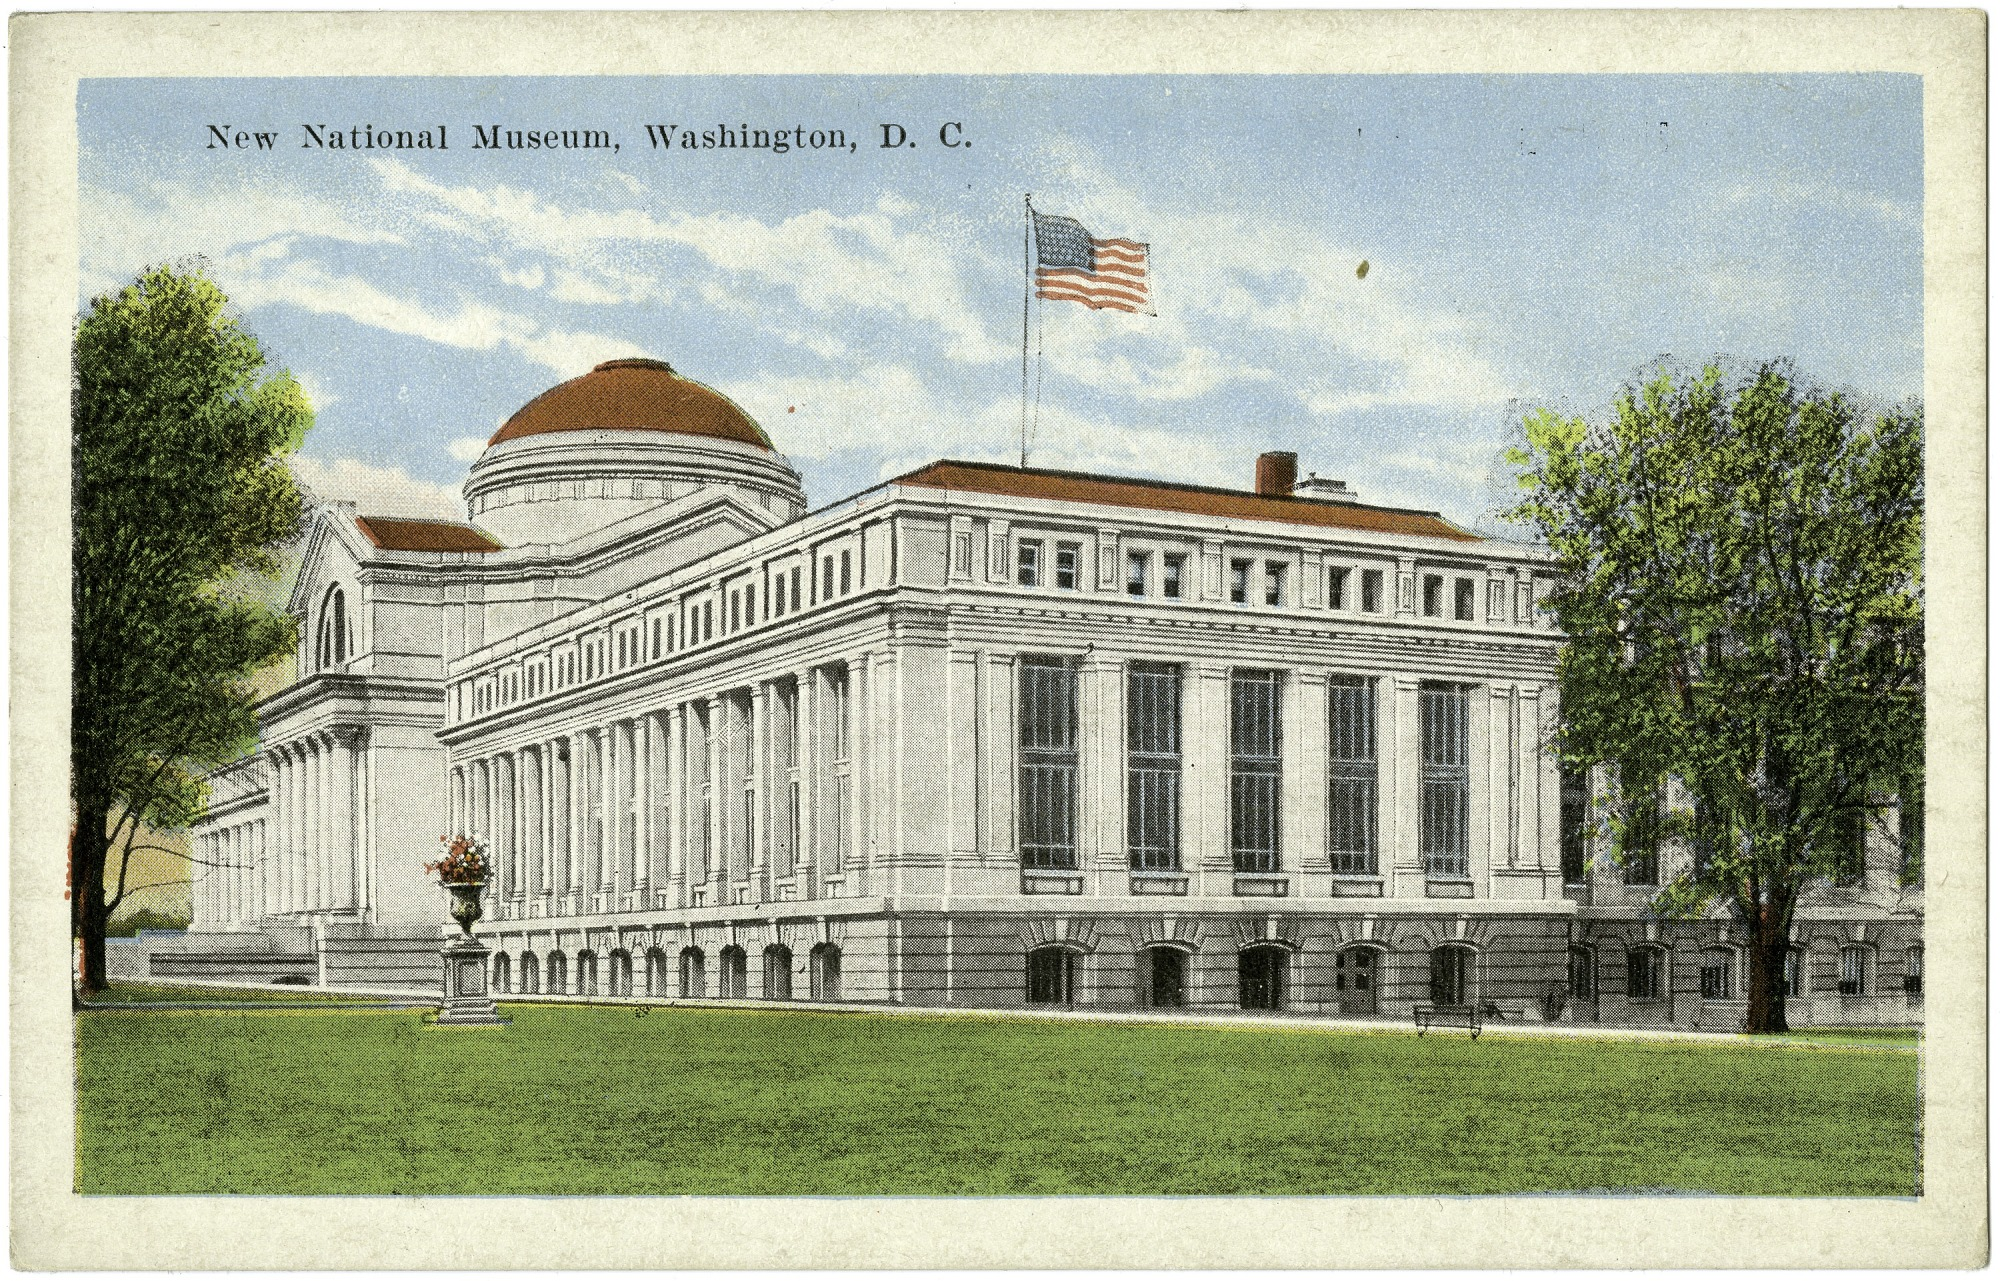 Postcard of the New National Museum, c. 1915-1930, Smithsonian Archives - History Div, SIA2011-2289 (front) and SIA2011-2290 (back).